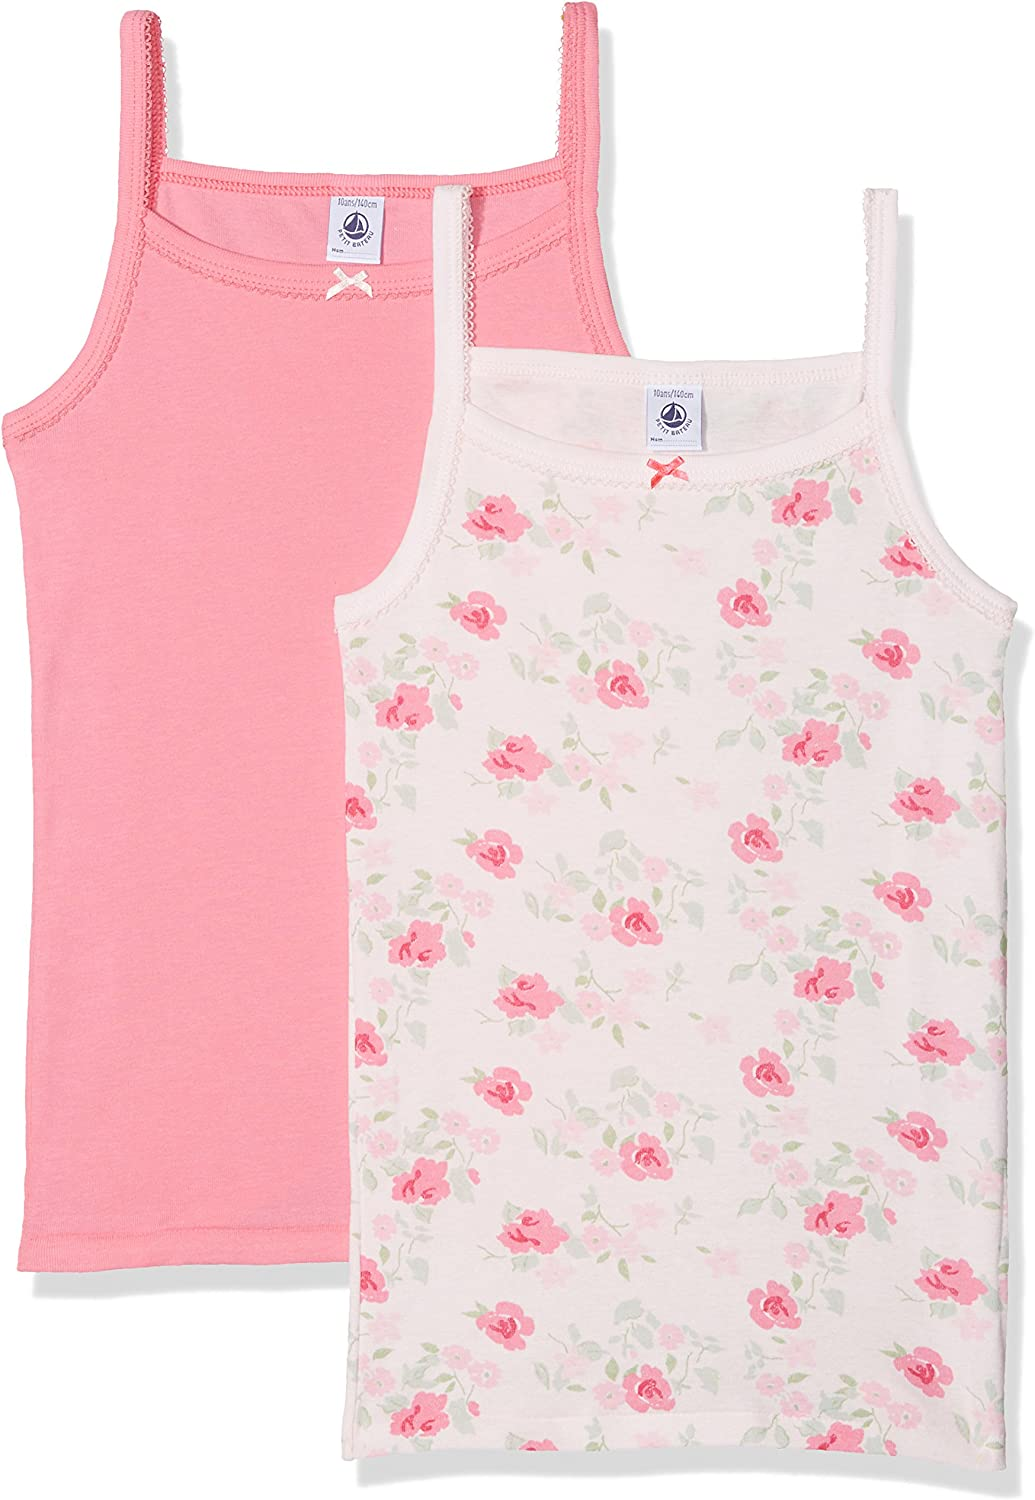 Petit Bateau Set of 2 Girls Camisoles-Undershirts Style 27928 Sizes 2-12